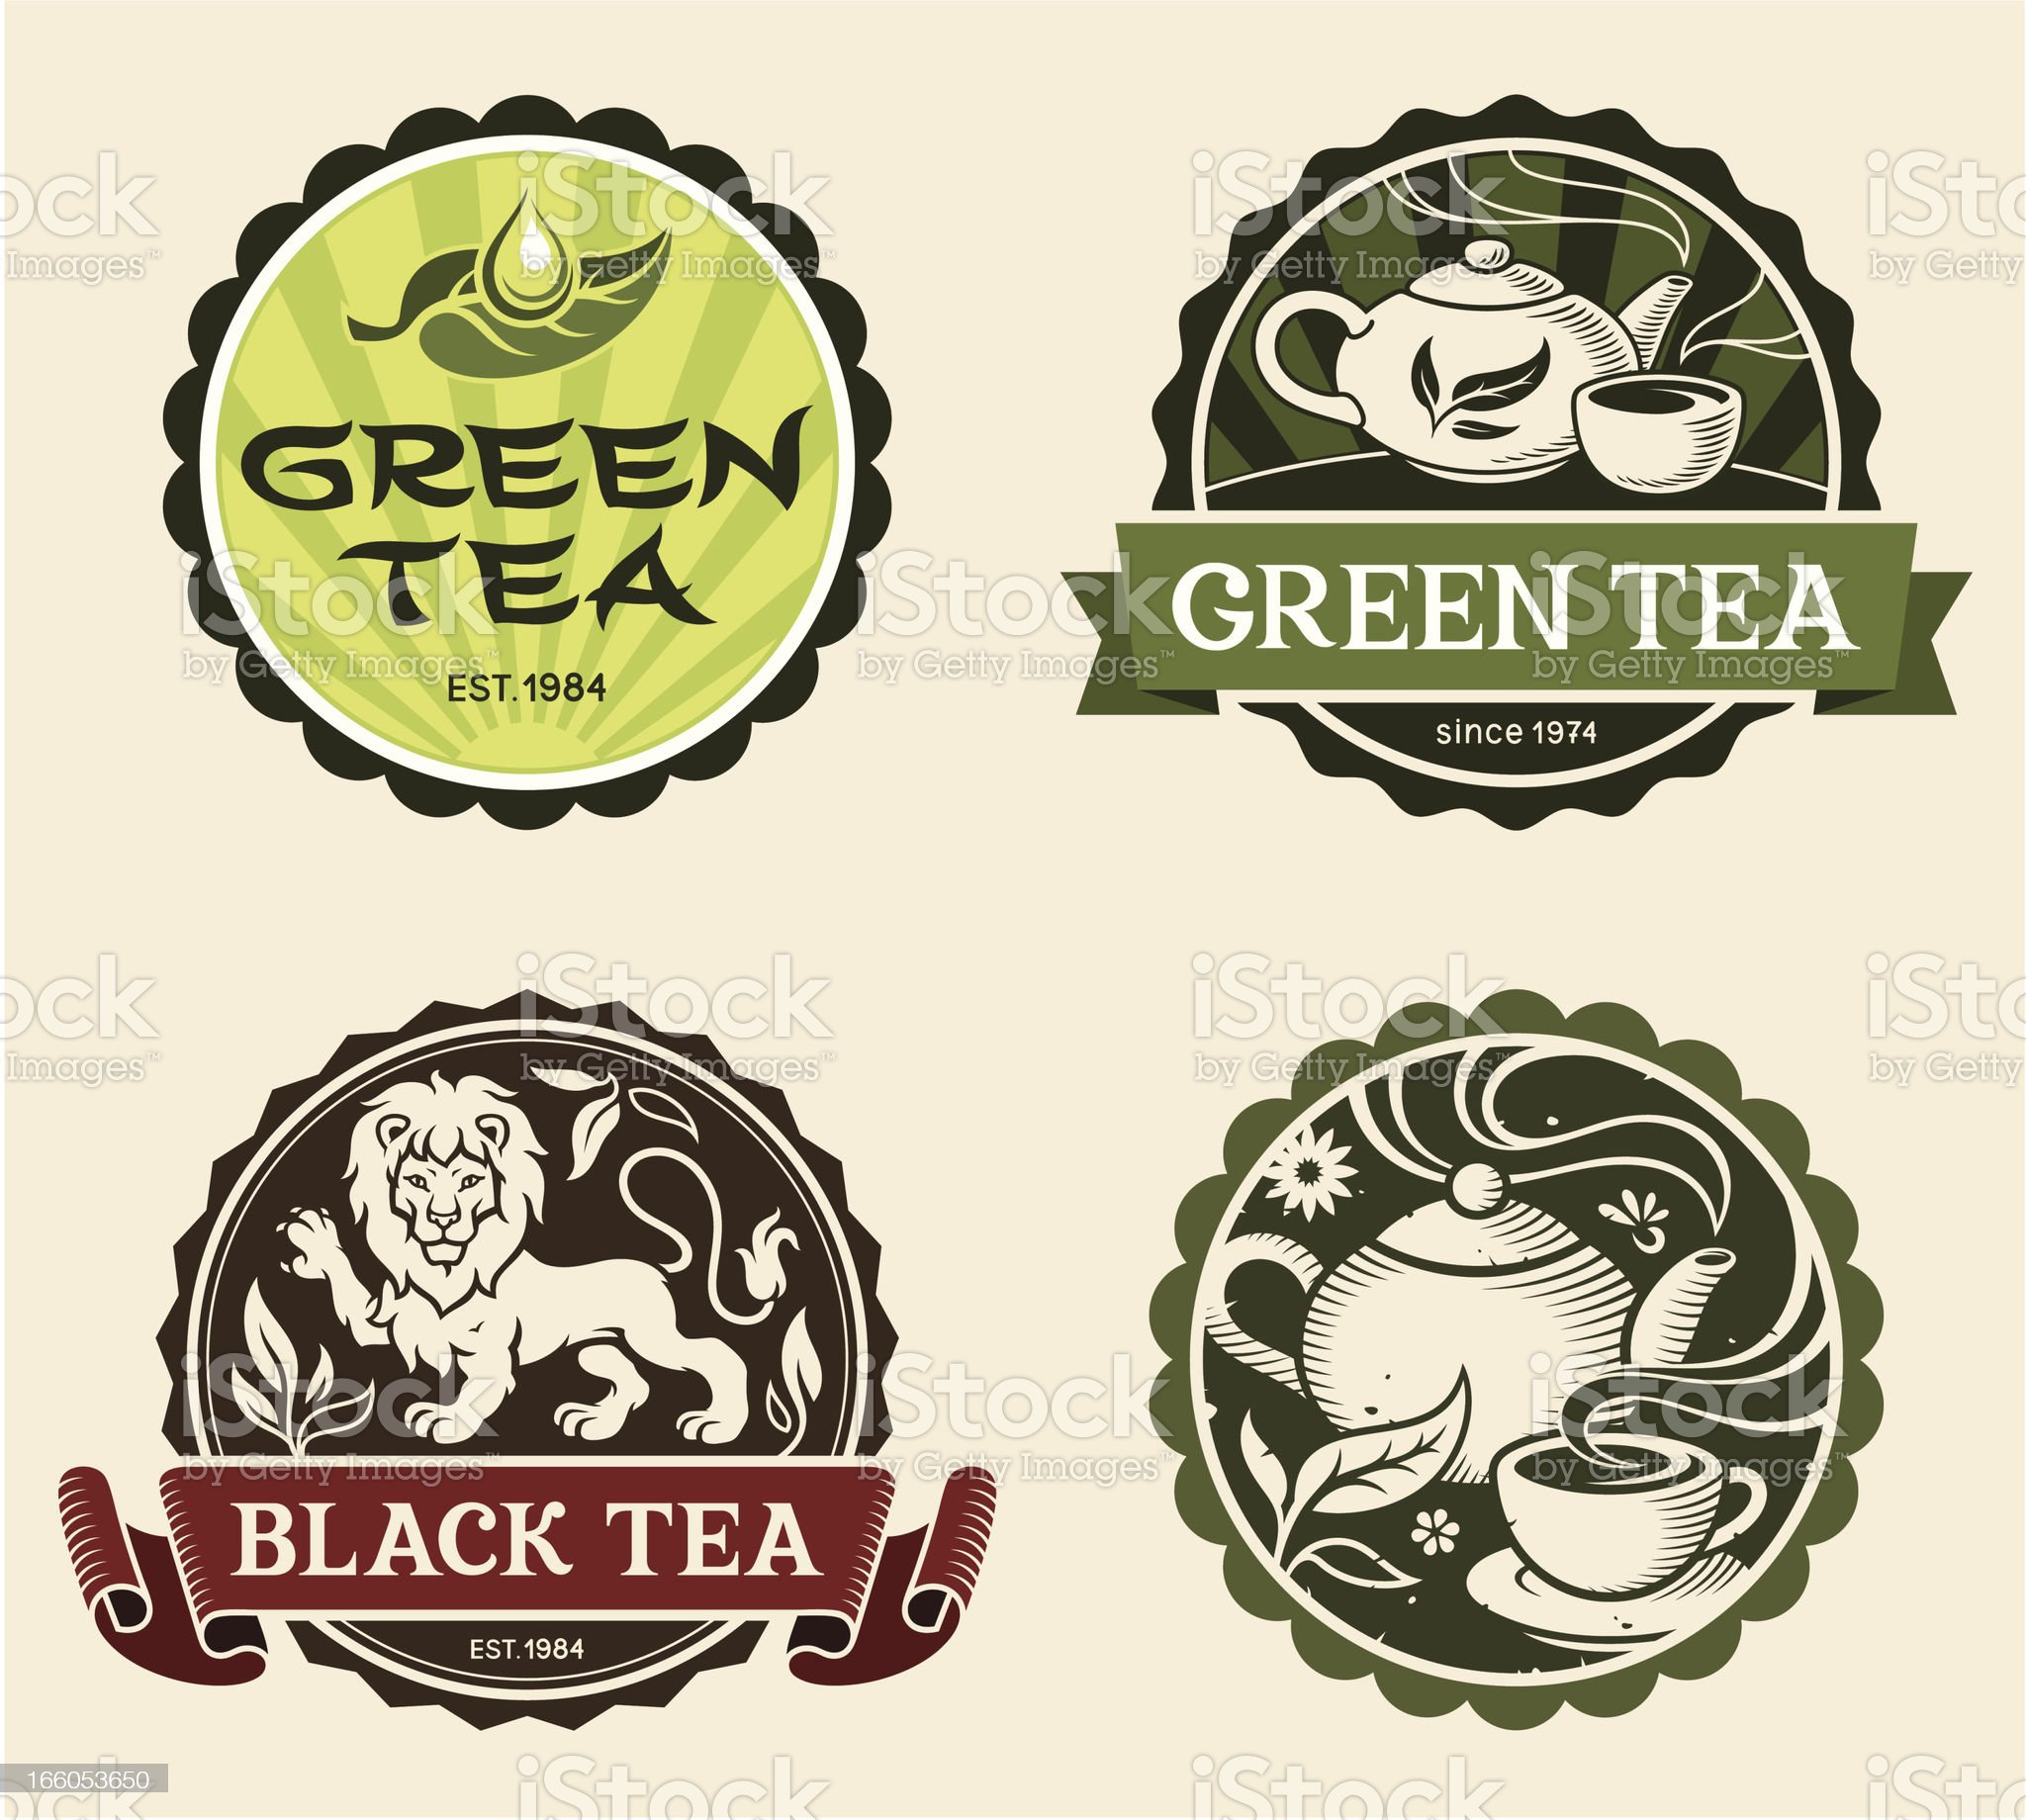 Tea labels royalty-free stock vector art